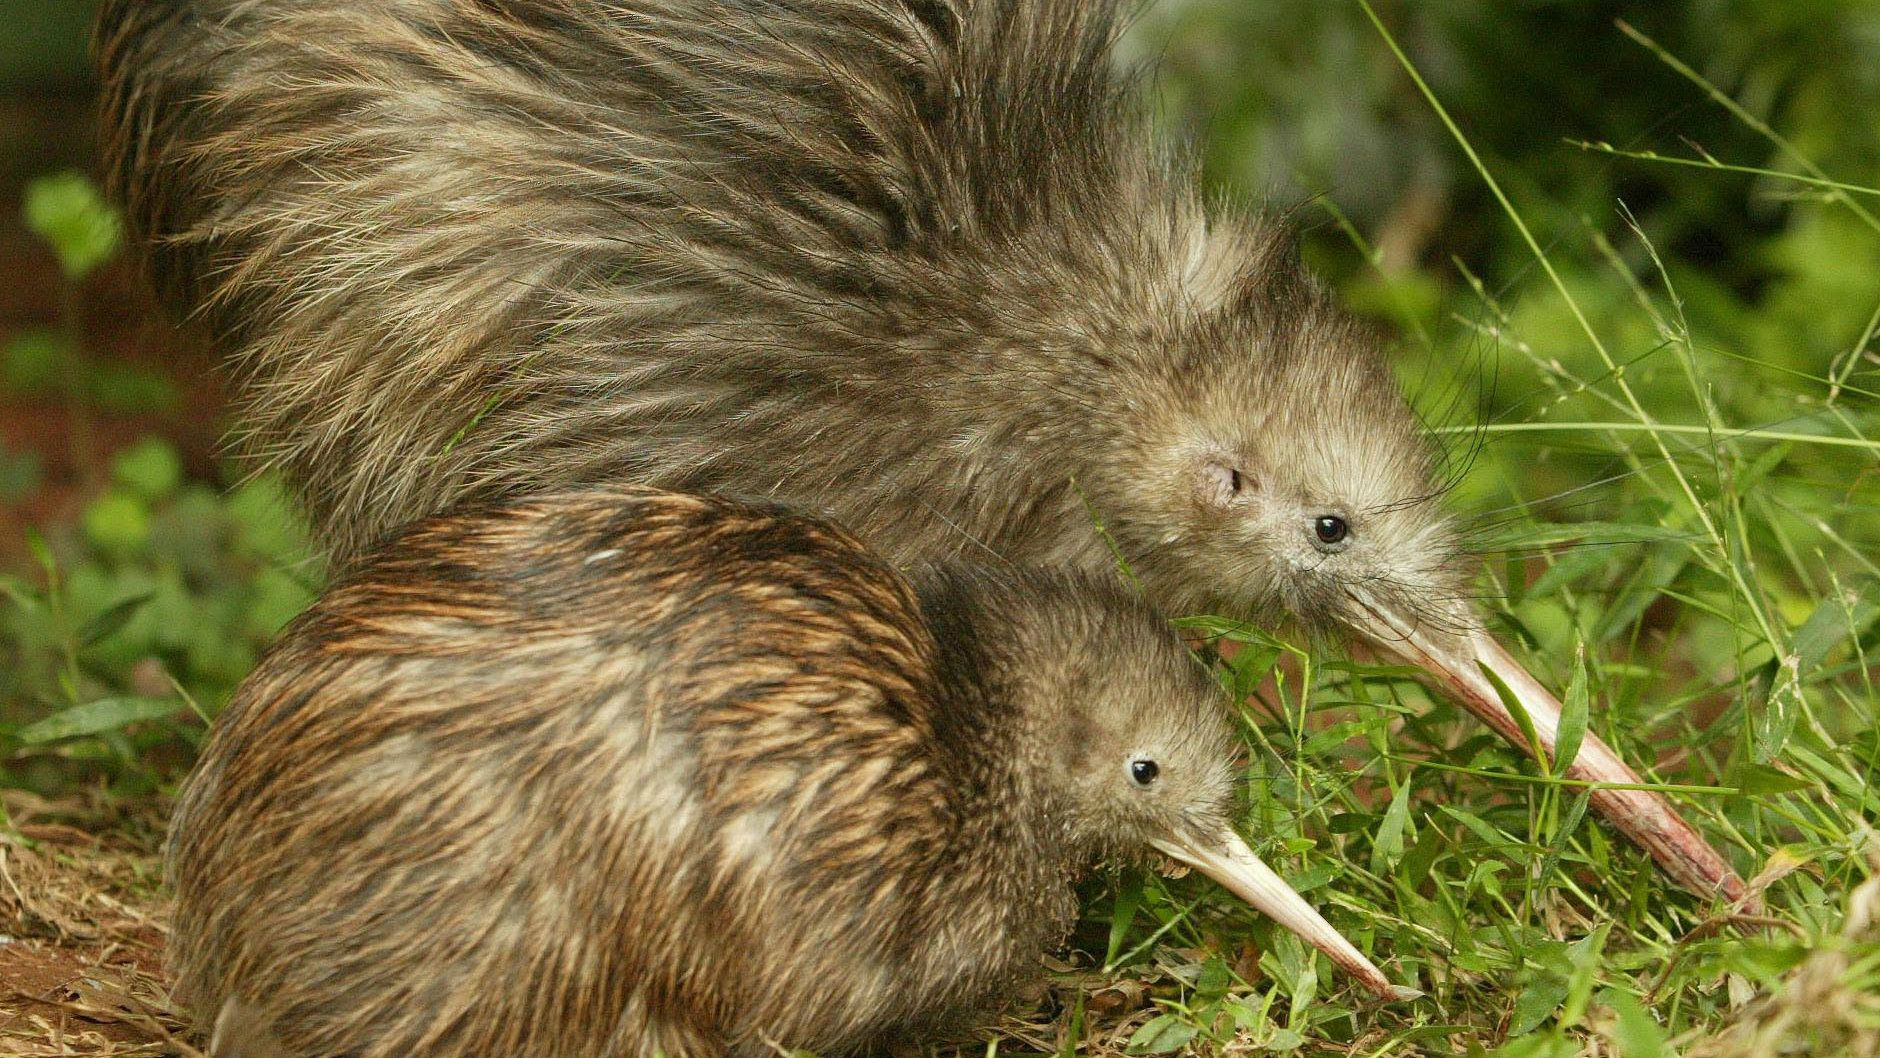 ** ADVANCE FOR THURSDAY, DEC. 25 ** A large female kiwi keeps a younger bird company at The Northpower Native Bird Recovery Centre in Whangarei, New Zealand Feb. 24, 2004. The introduction by humans over the centuries of pests such as rats, cats, dogs, stoats, ferrets, weasels and possums have made the battle to save New Zealand's endemic animals so tough the government concedes it is unwinnable on some fronts. (AP Photo/New Zealand Herald, John Stone)